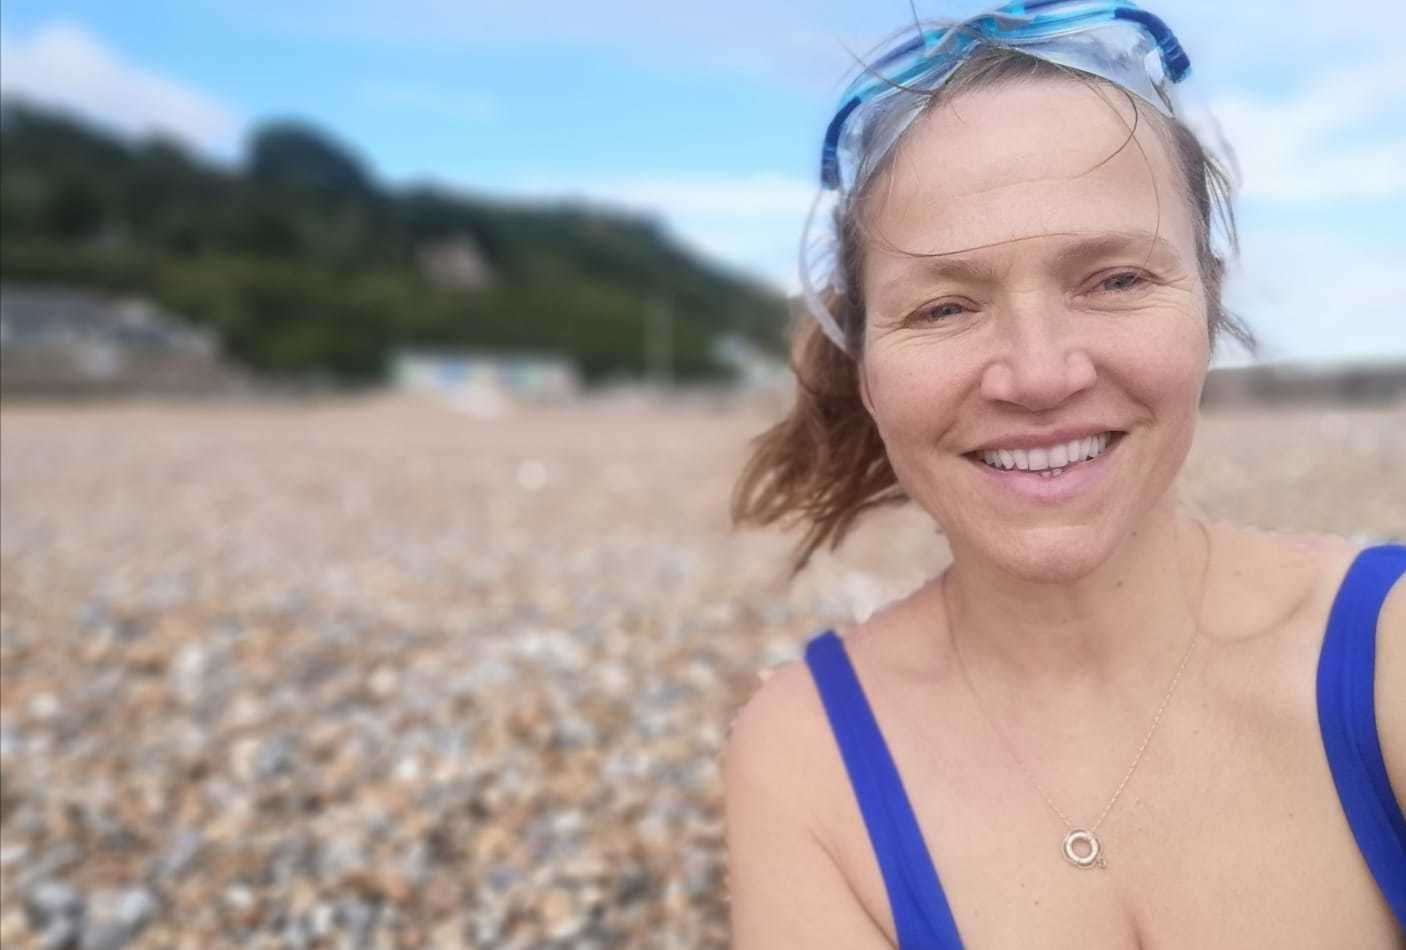 Actress and swimmer Jessica Hynes, who lives in Folkestone, will swim from Hythe to Sunny Sands beach this weekend. Picture: Raga Gibreel